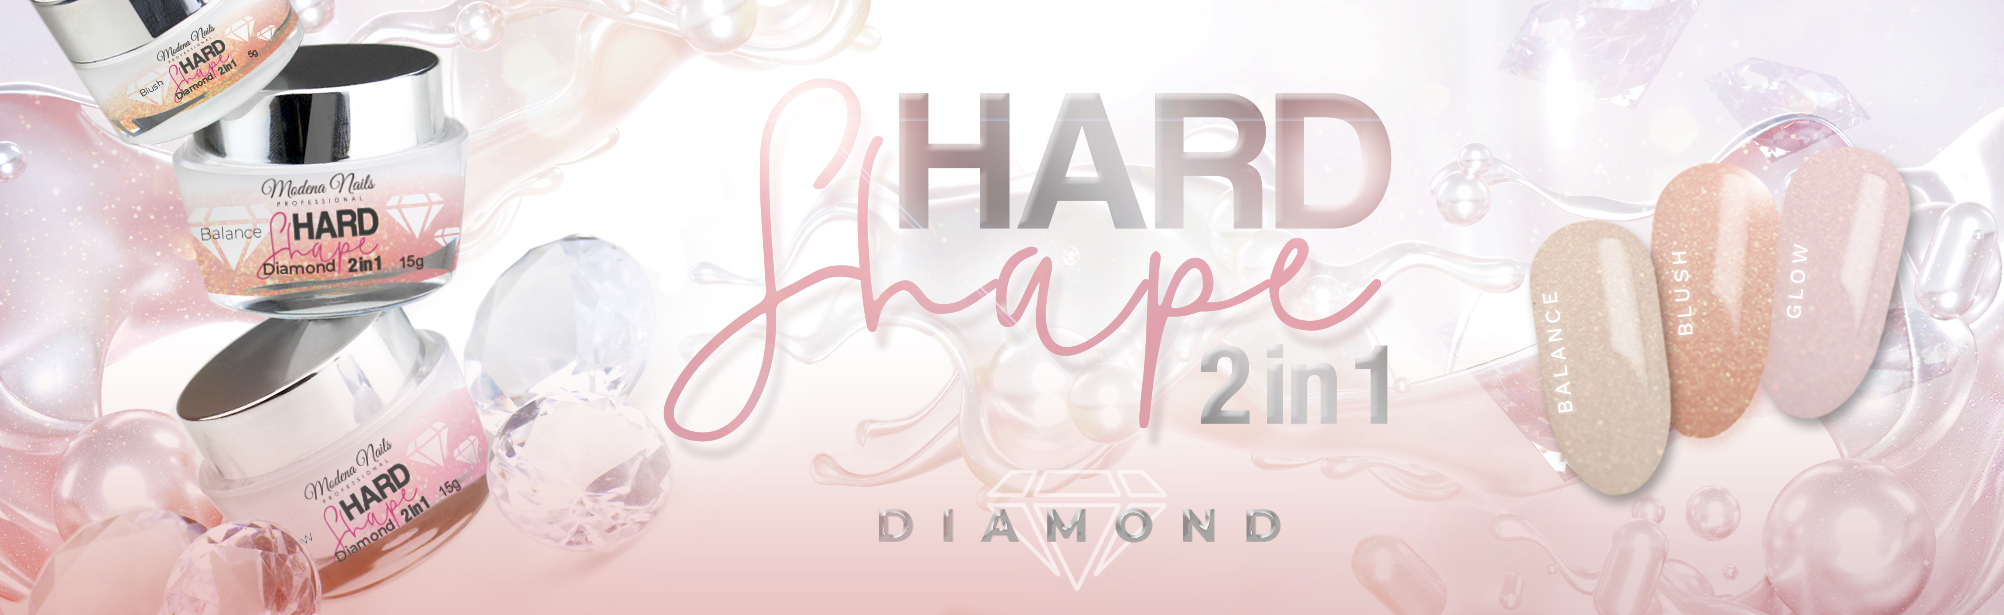 Hard Shape Diamond